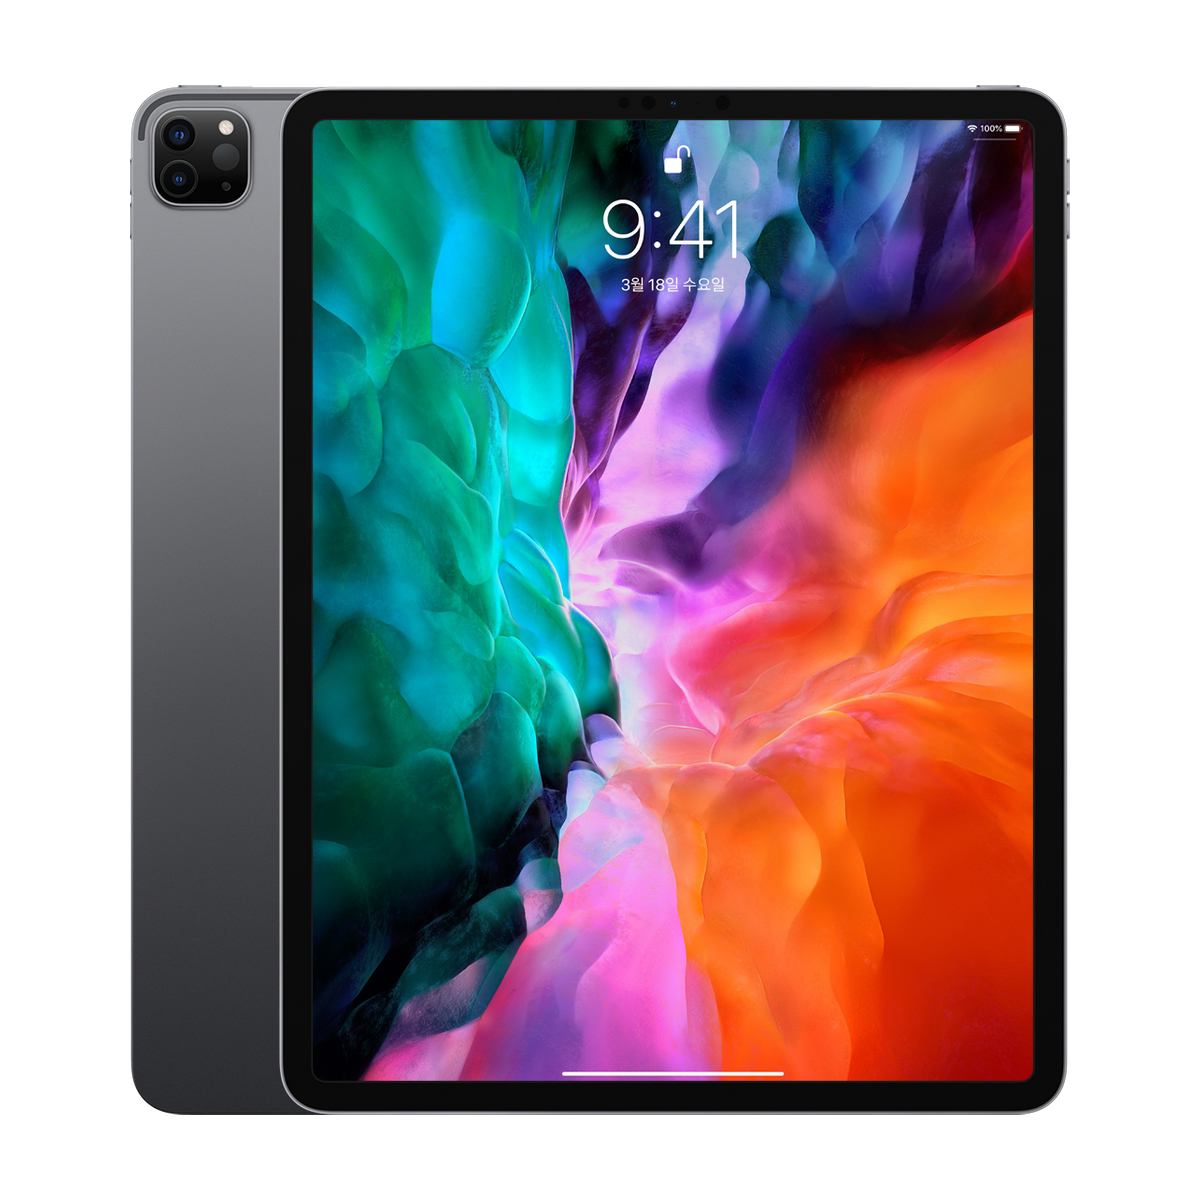 Apple 2020년 iPad Pro 12.9 4세대, Wi-Fi, 128GB, Space Gray